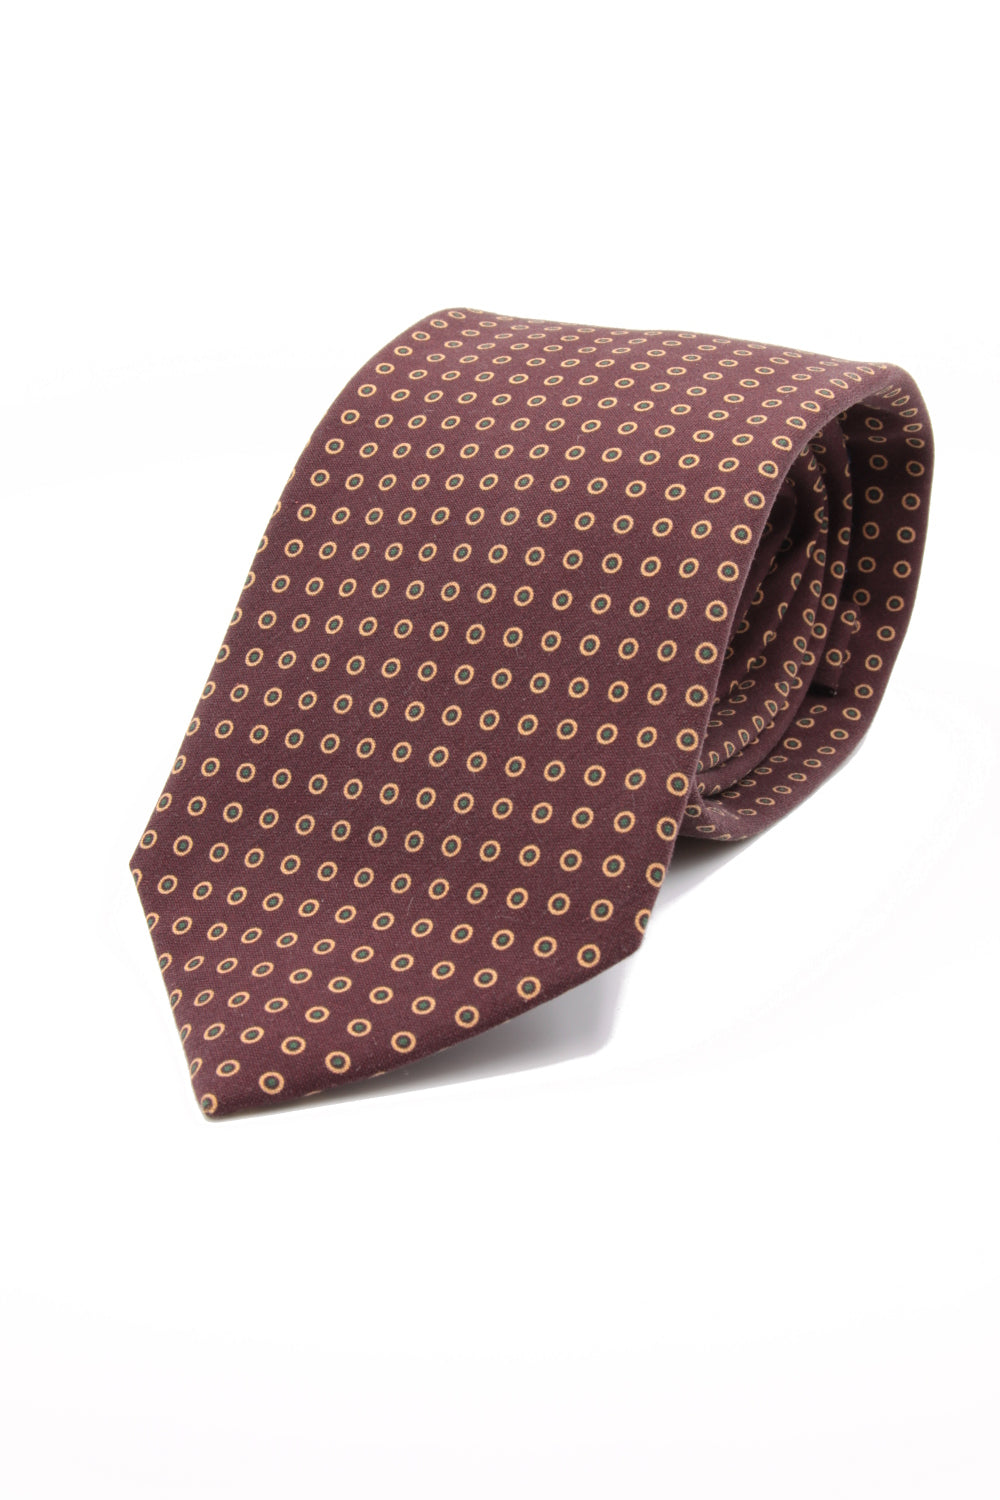 drake's Rust, orange and green dots tie